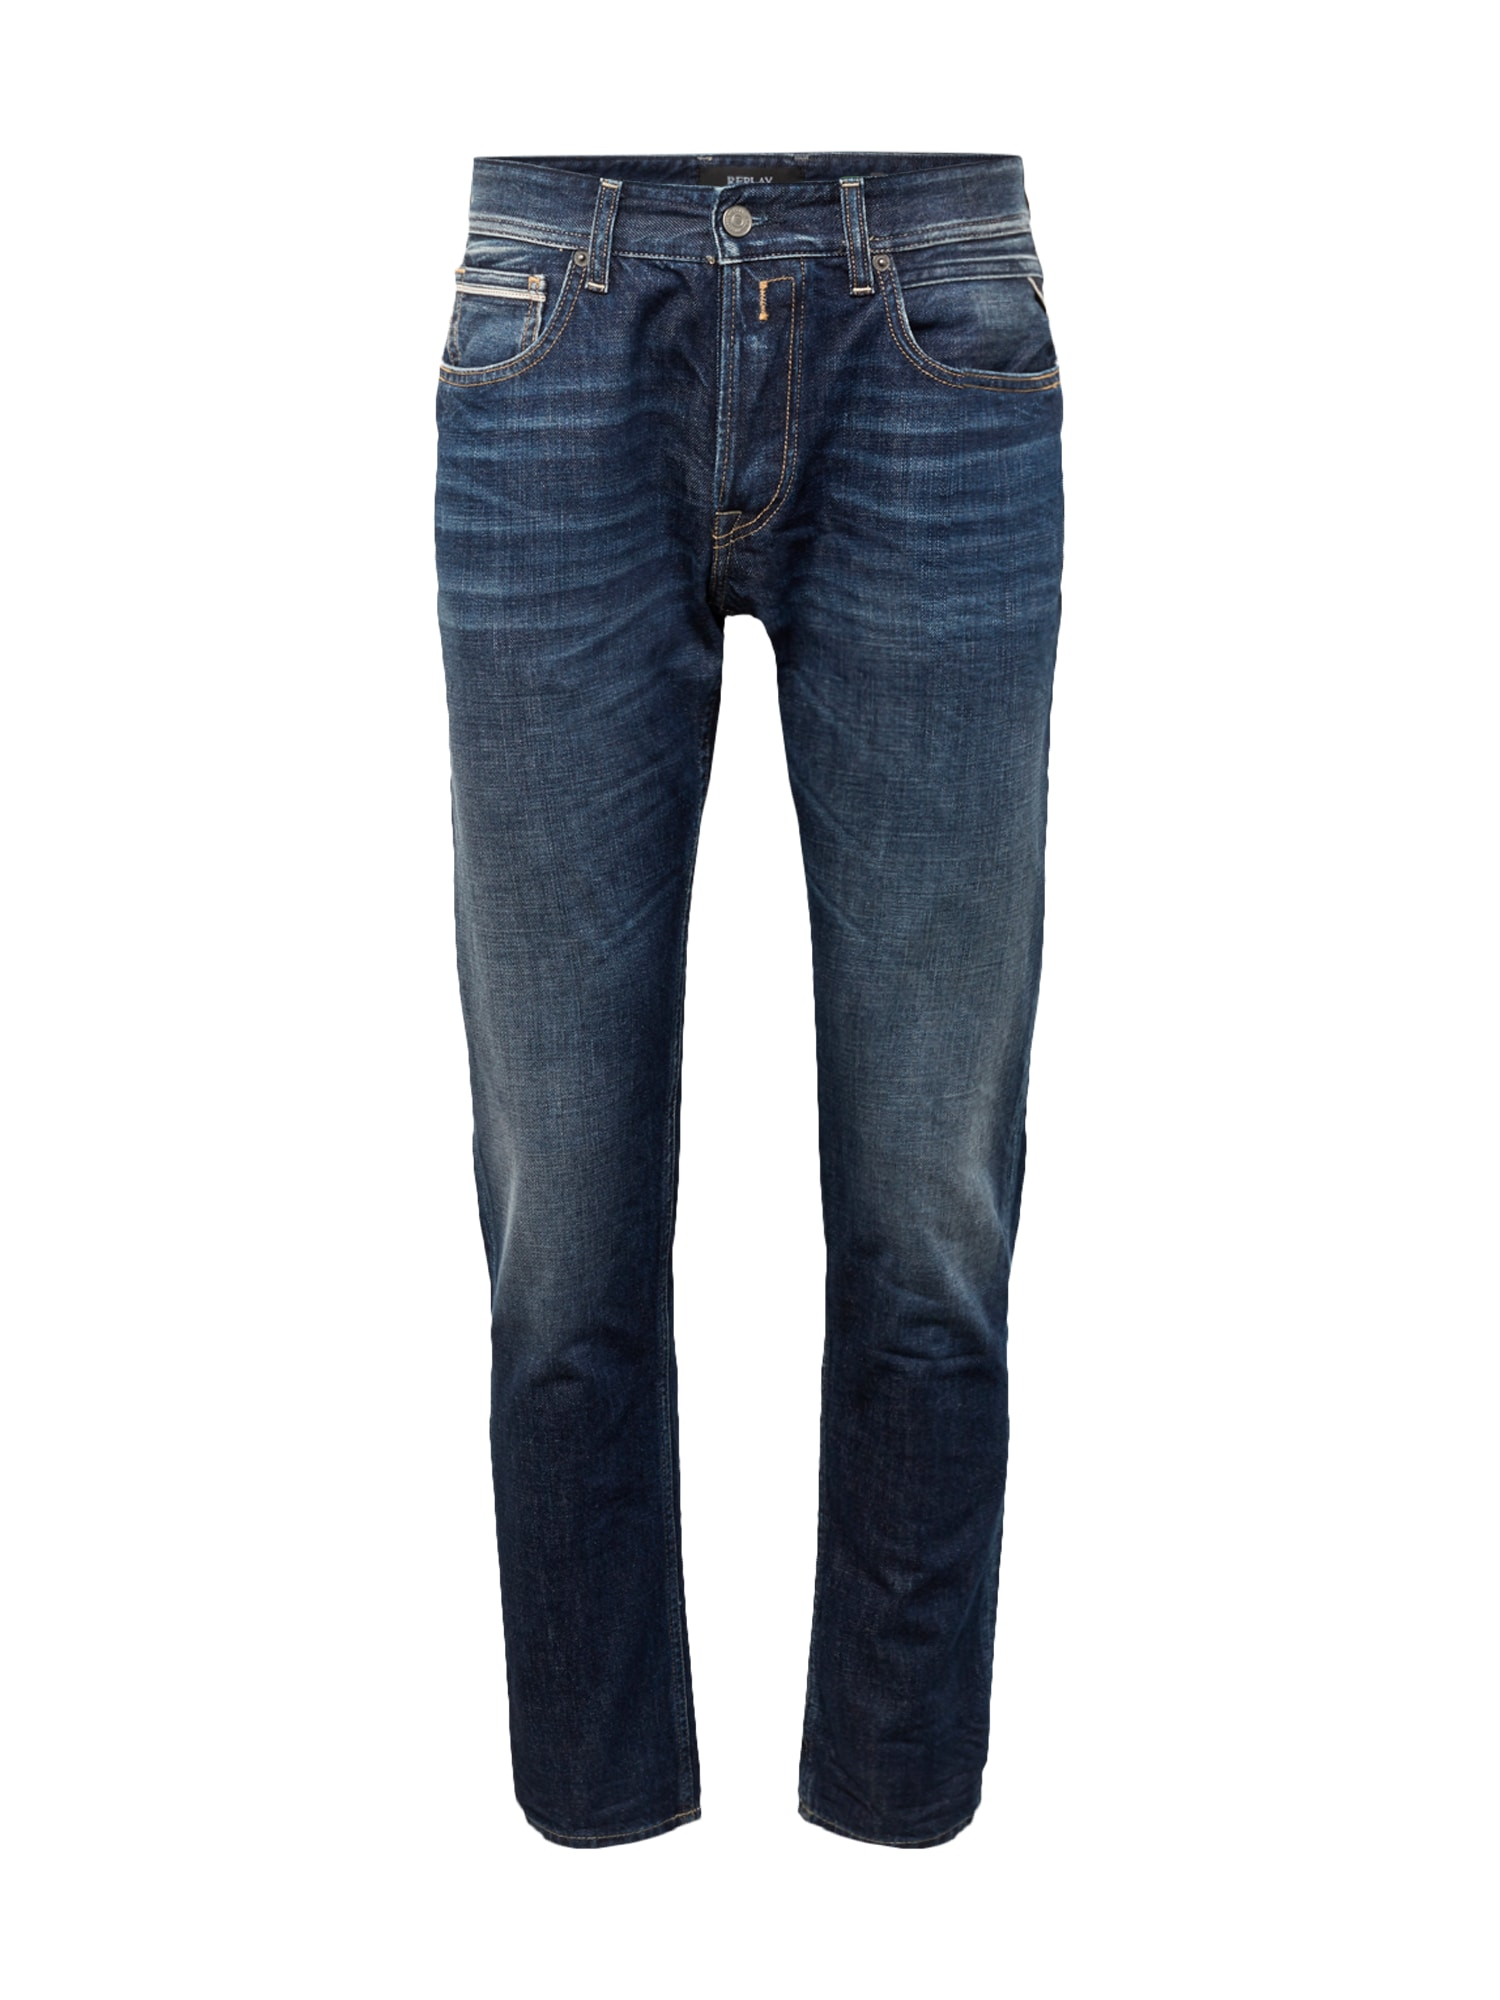 REPLAY Jeans 'Grover'  denim albastru